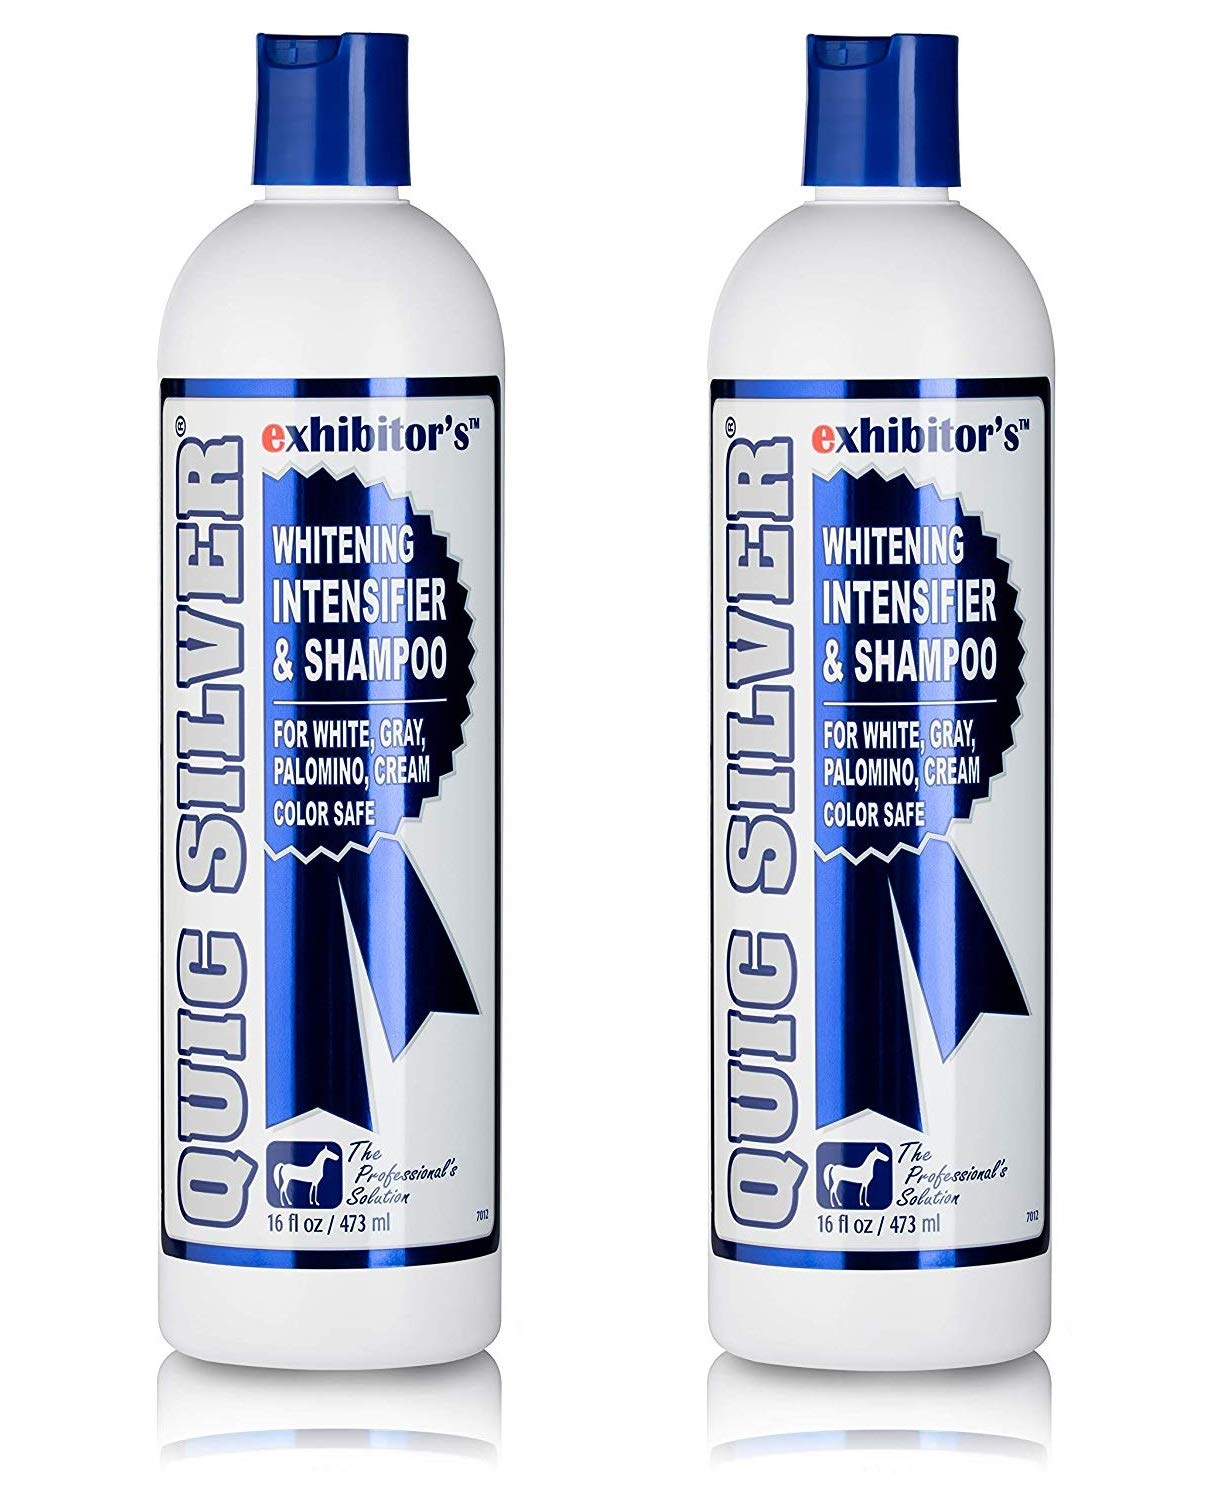 Exhibitor Laboratories 2 Pack of Quic Silver, 16 Ounces Each, Whitening Intensifier and Shampoo for Horses, Color Safe by Exhibitor Laboratories